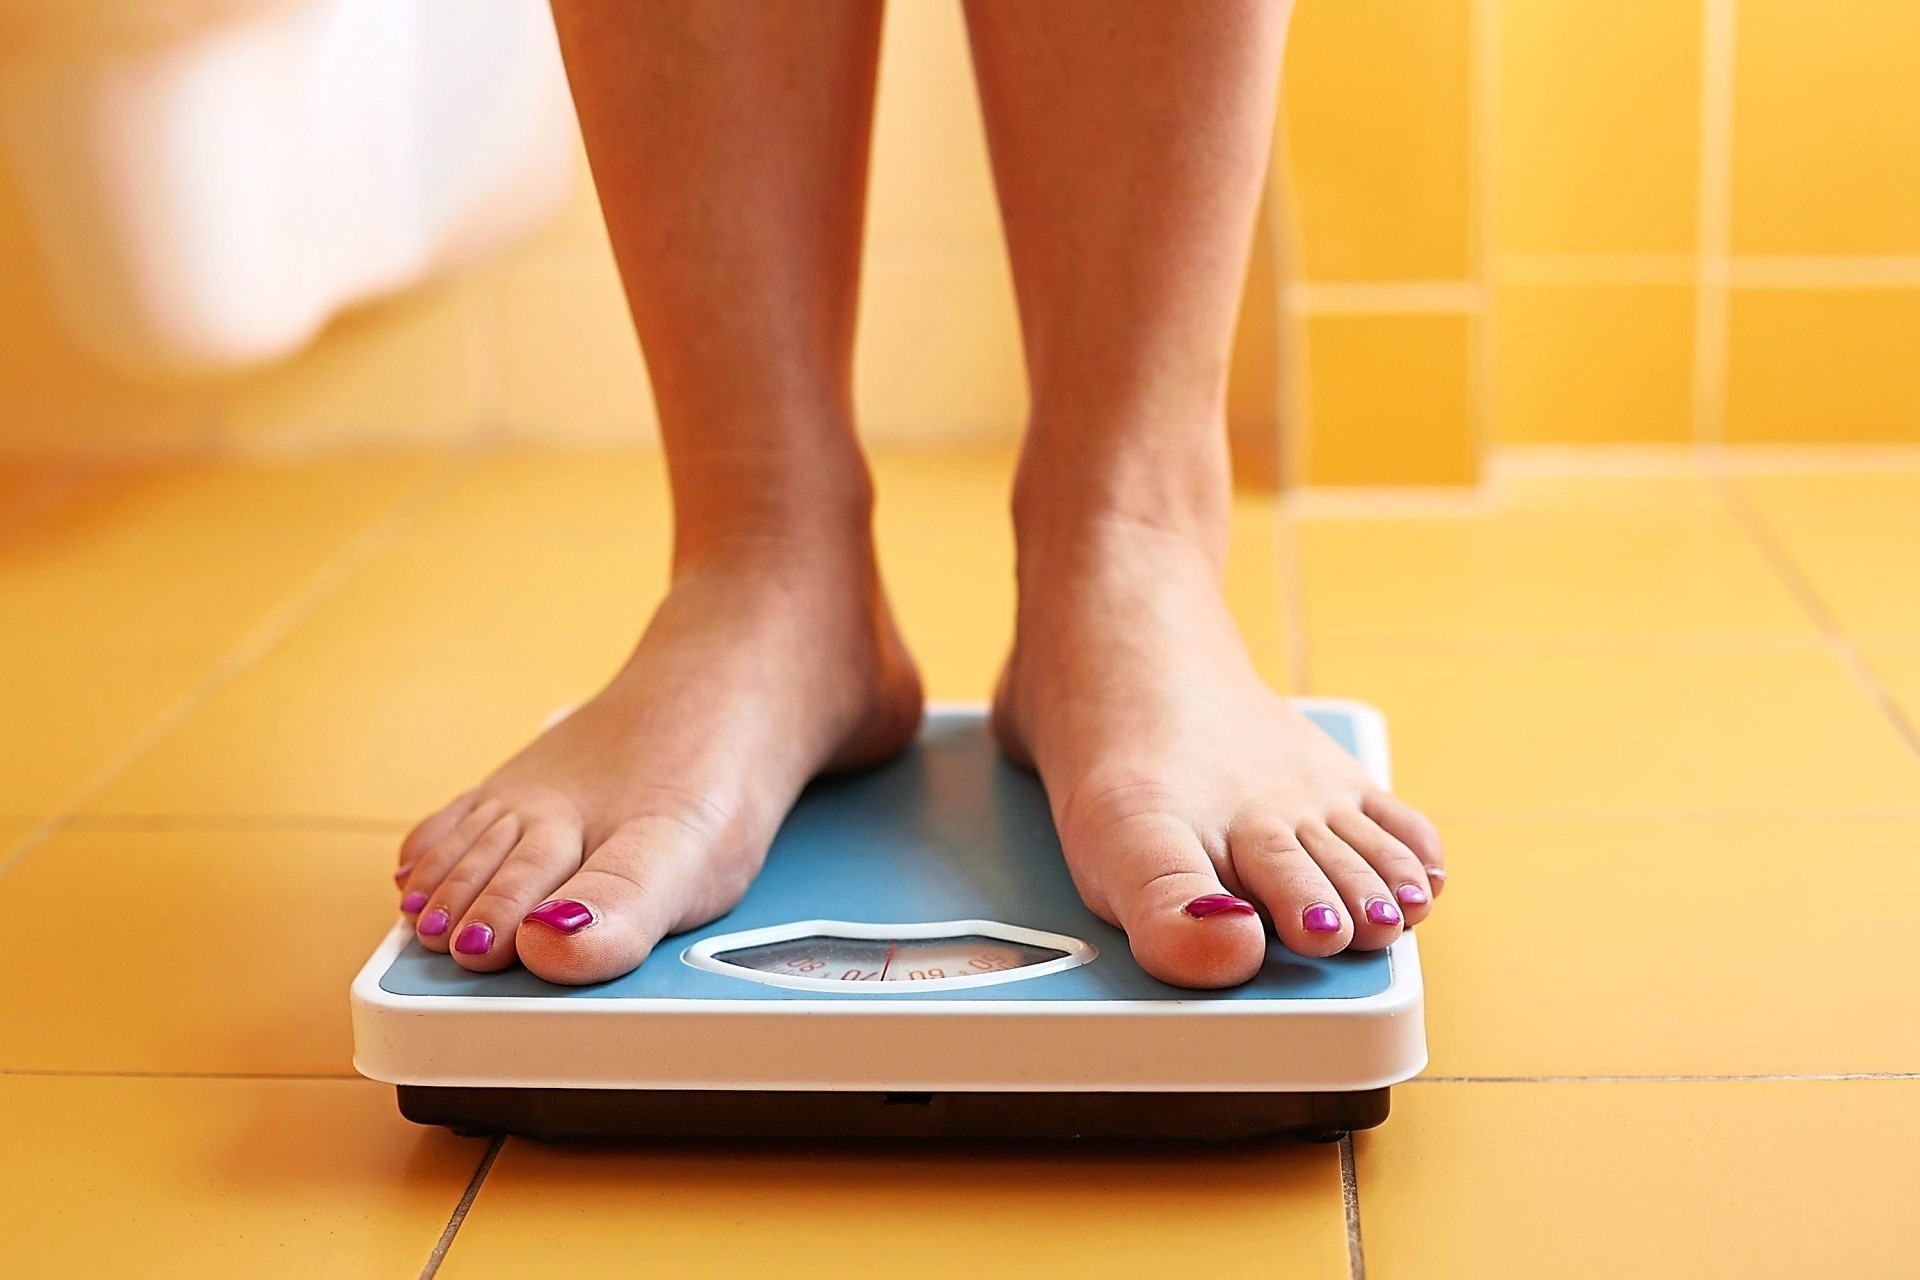 Losing weight is one way to manage the symptoms of PCOS as it can help improve your metabolism and hormone balance.